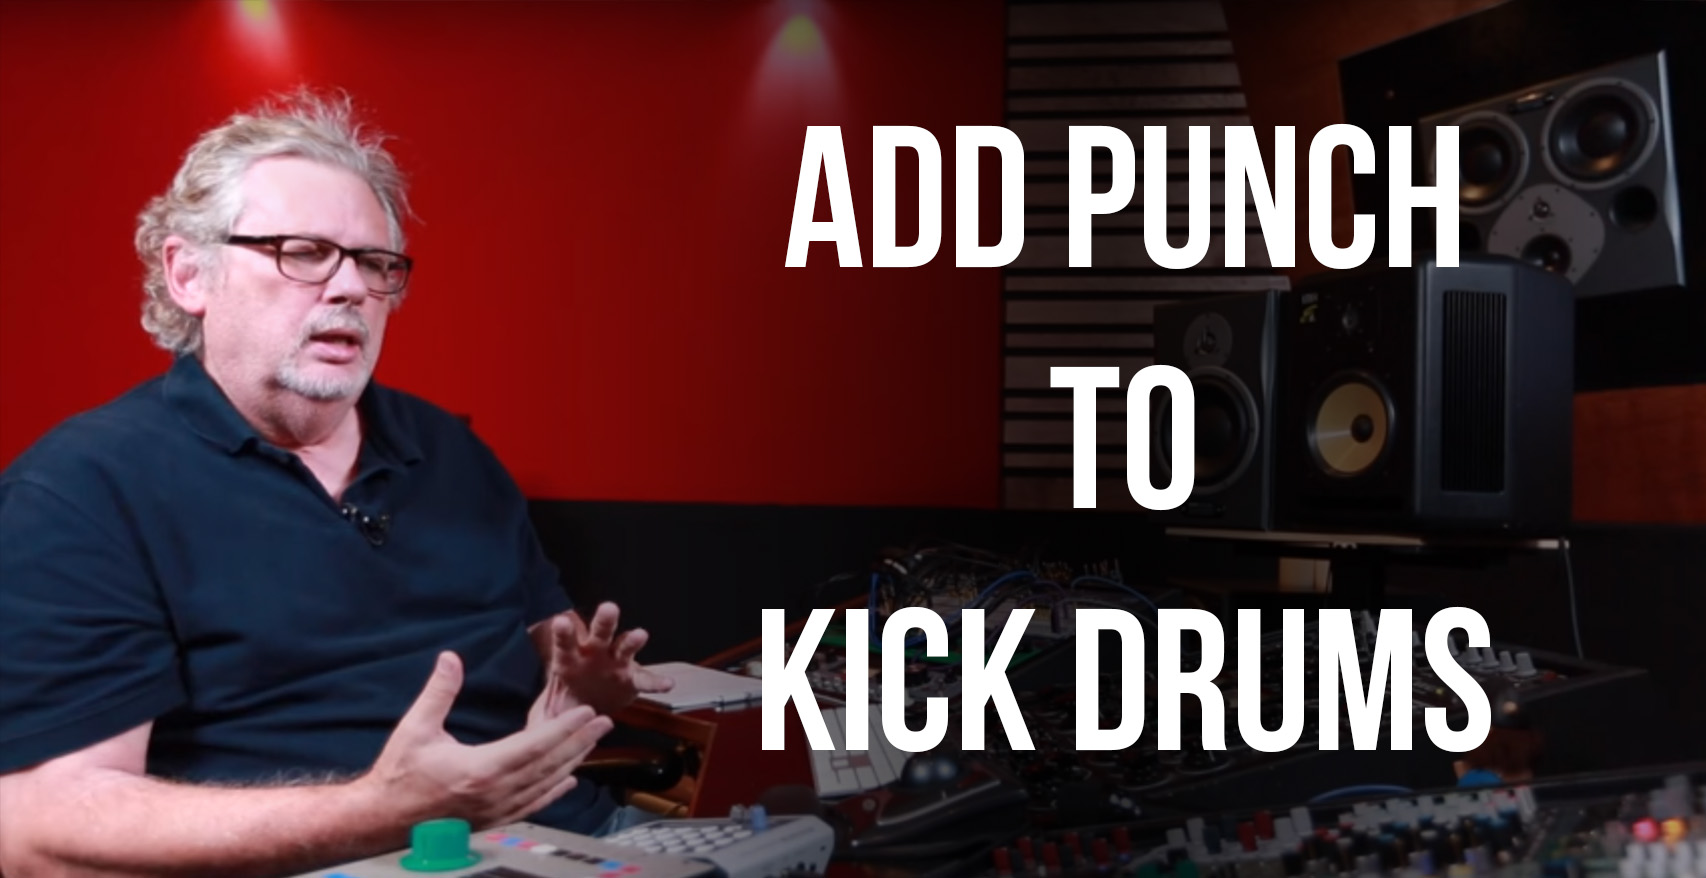 Add Punch to Kick Drums